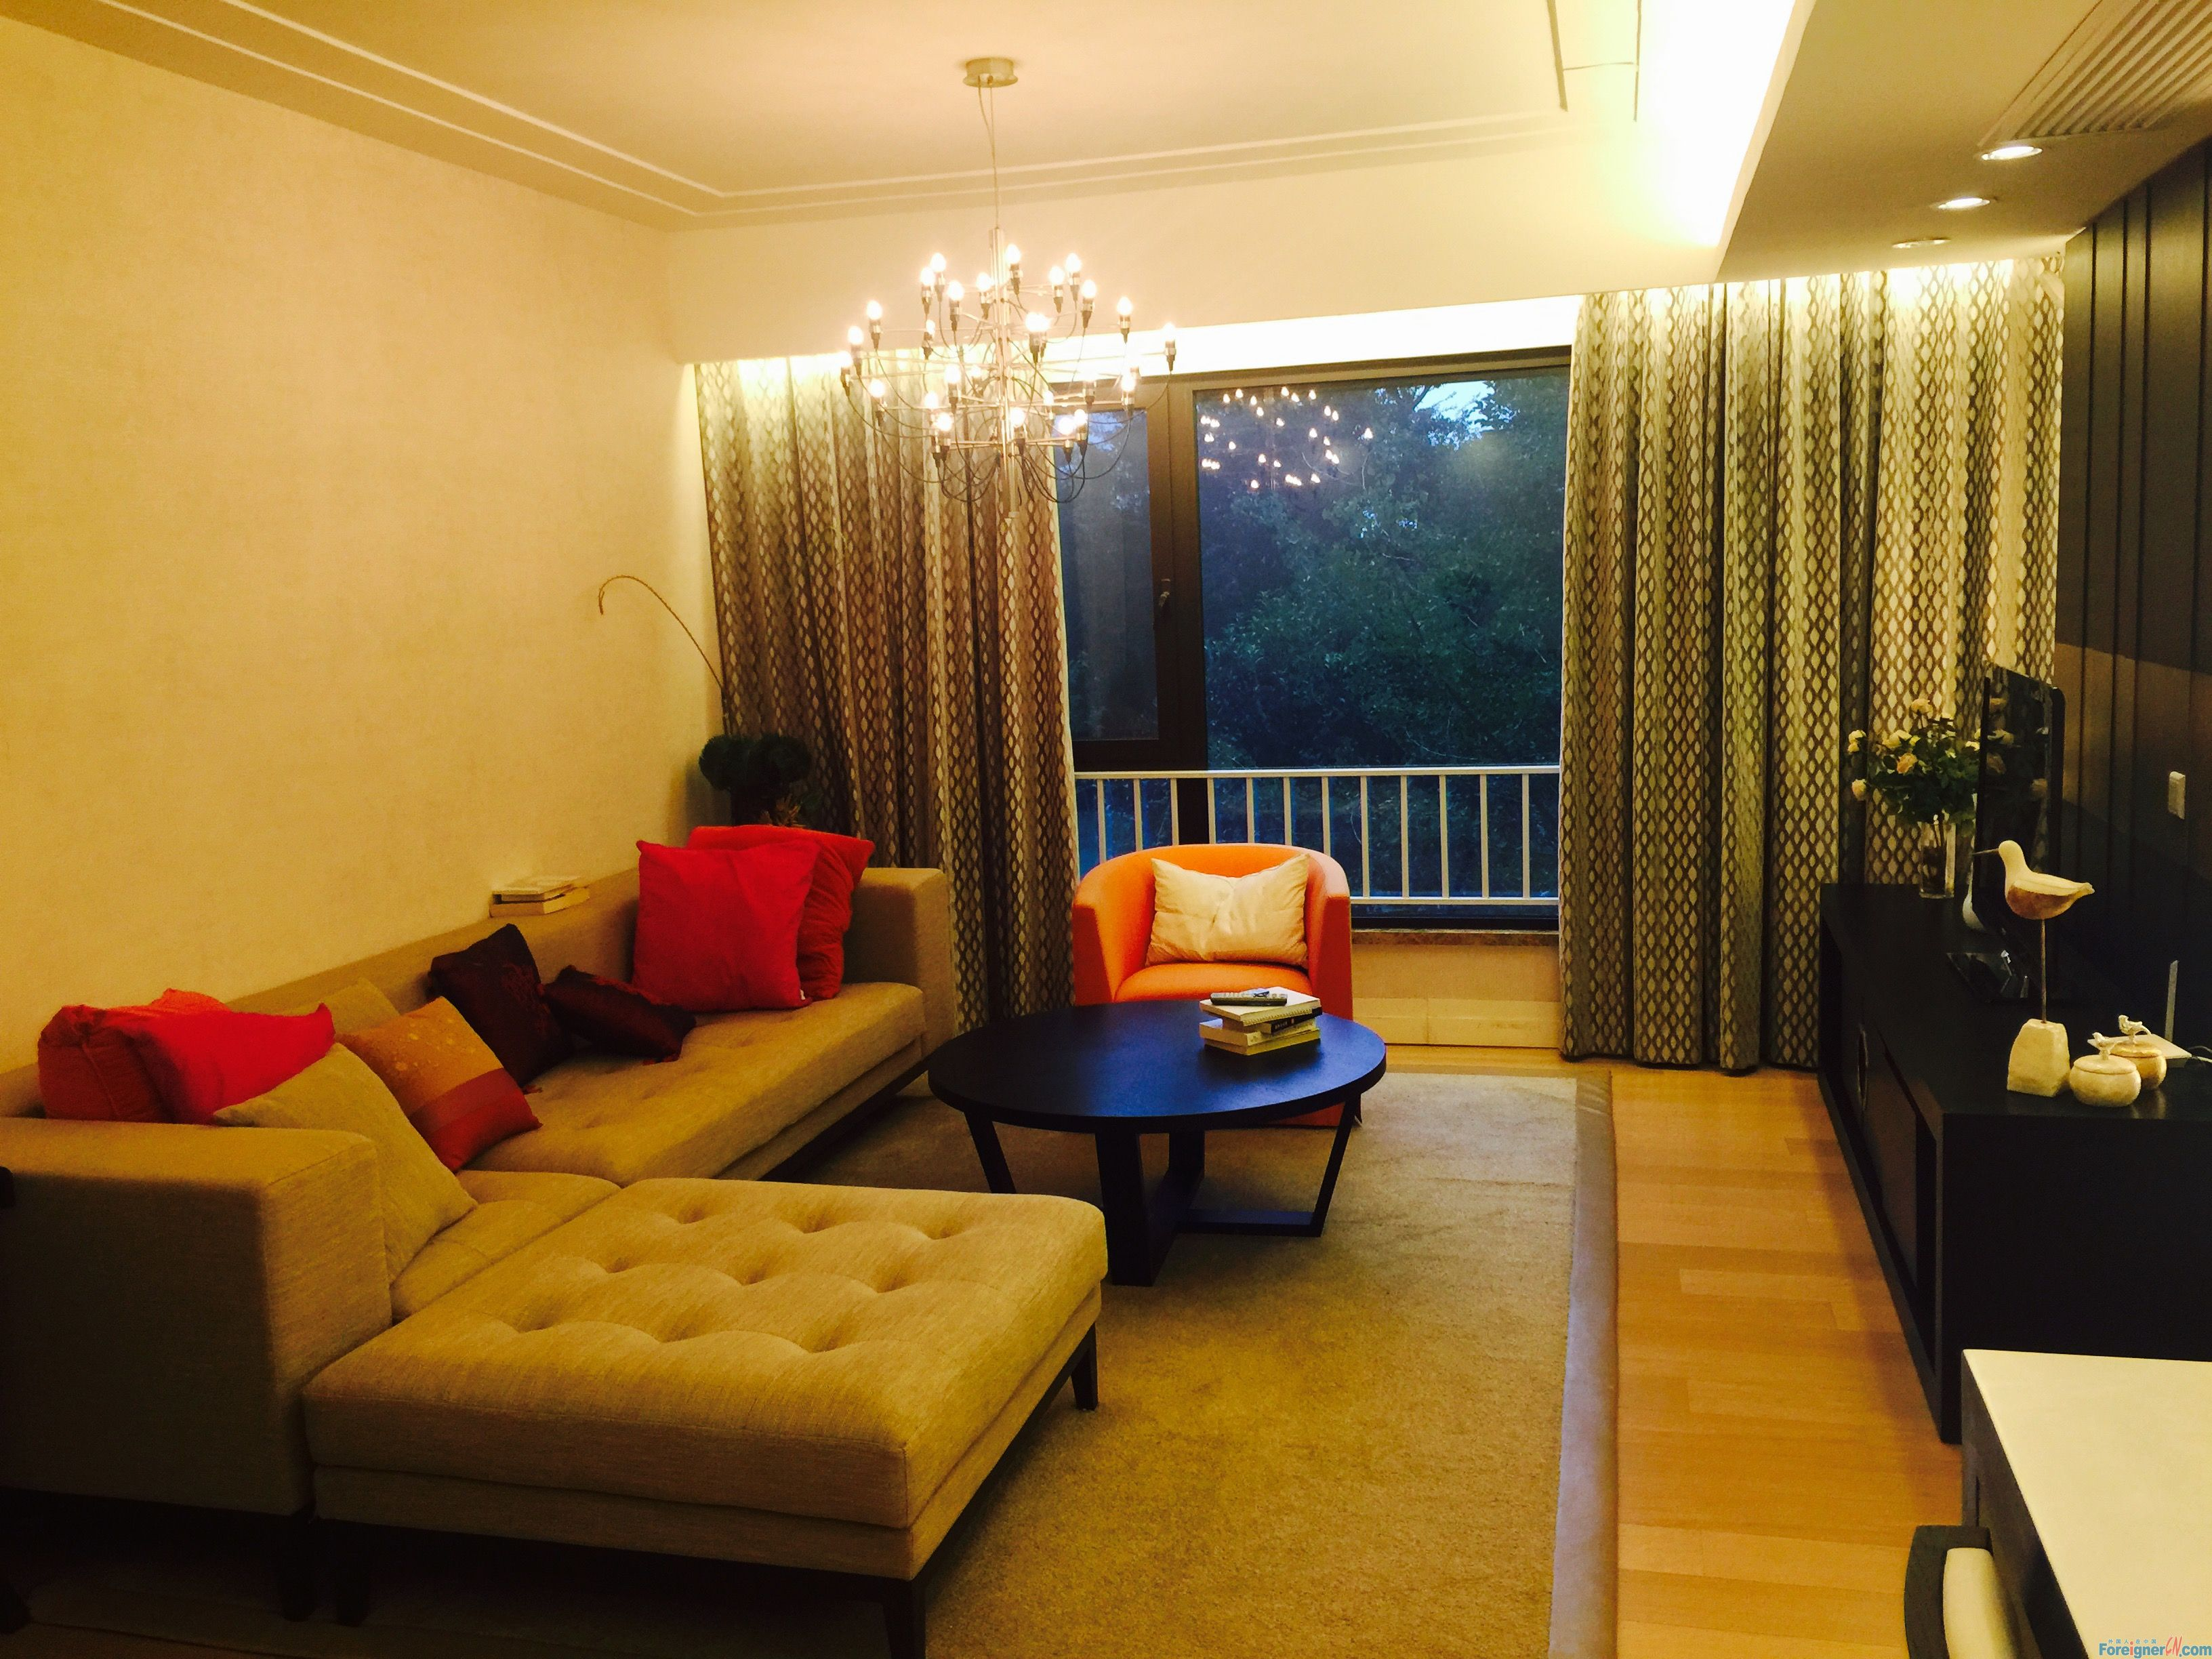 Bayside garden,big 1br with floor heating central a/c,open kitchen